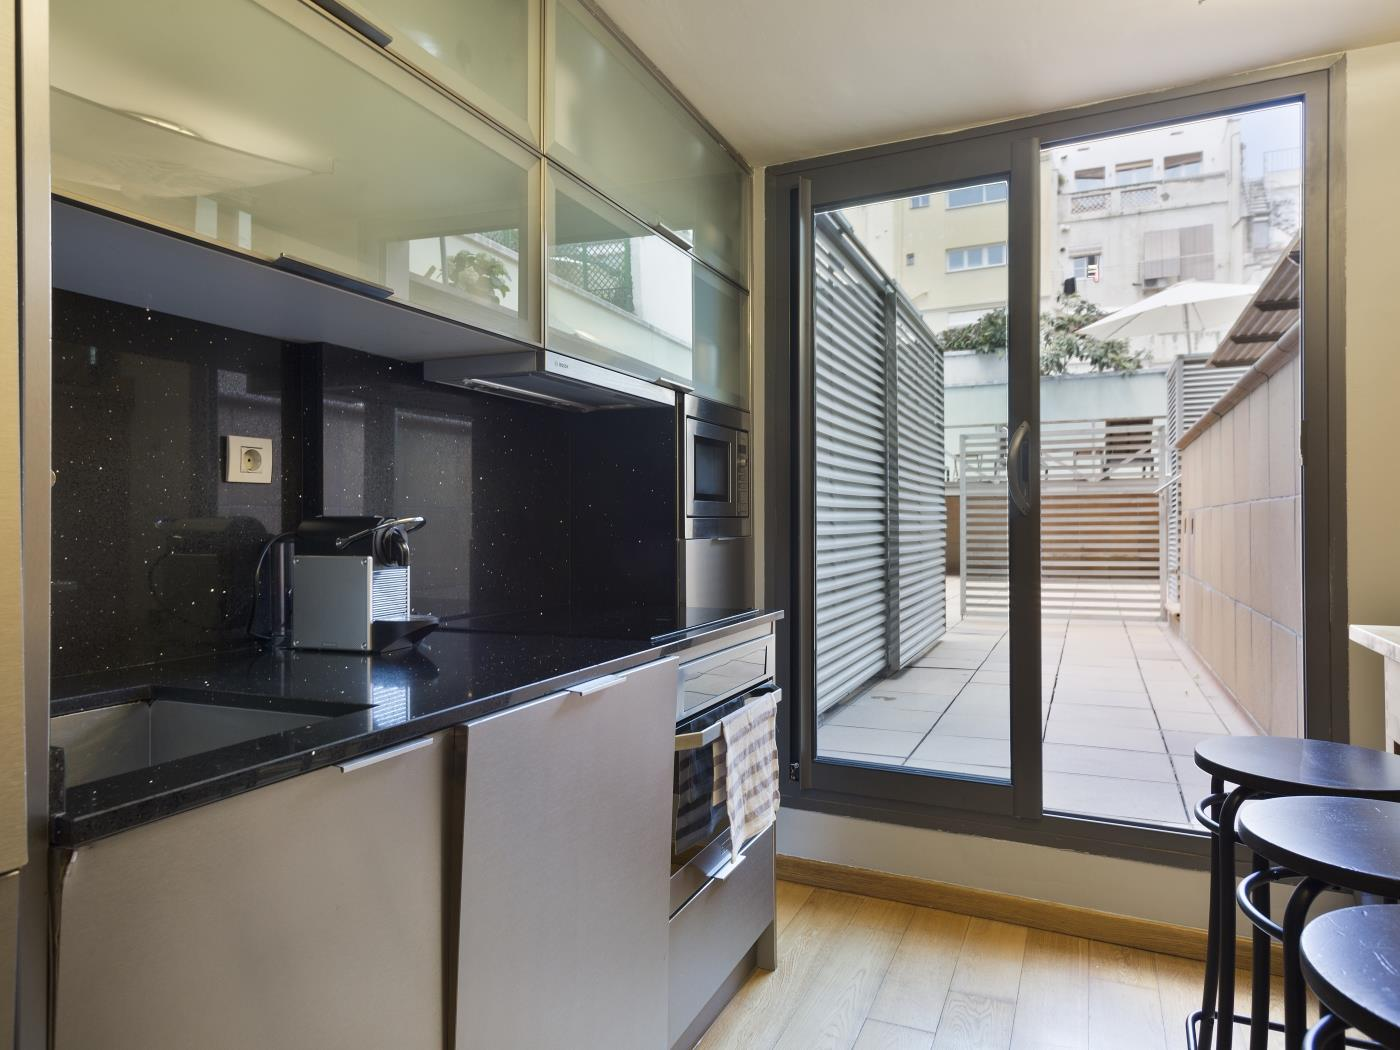 Gracia loft with privatve terrace and shared pool - My Space Barcelona Mieszkanie